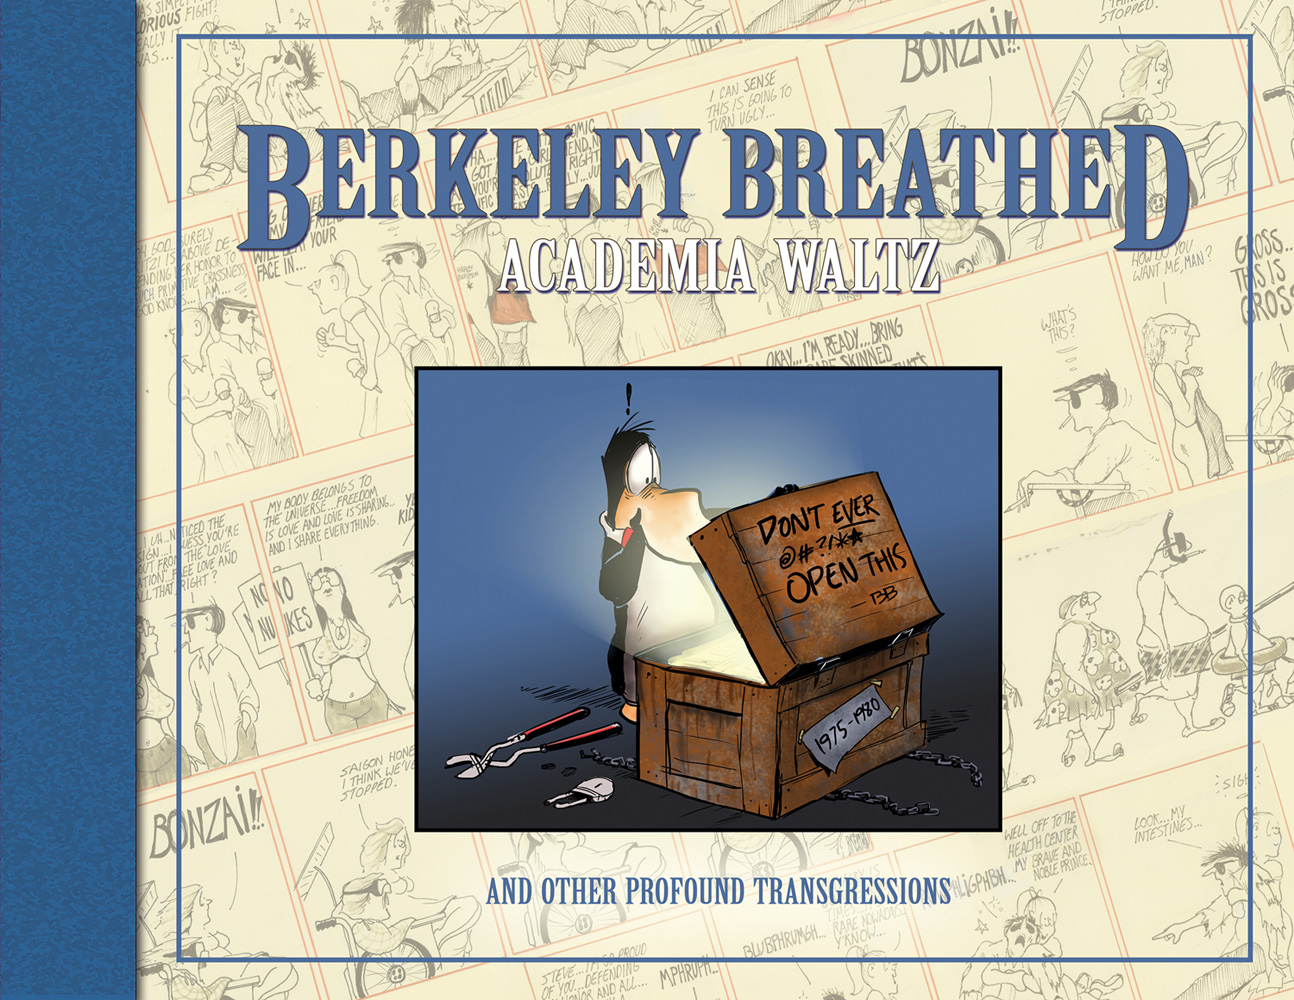 Berkeley Breathed's Academia Waltz & Other Profound Transgressions